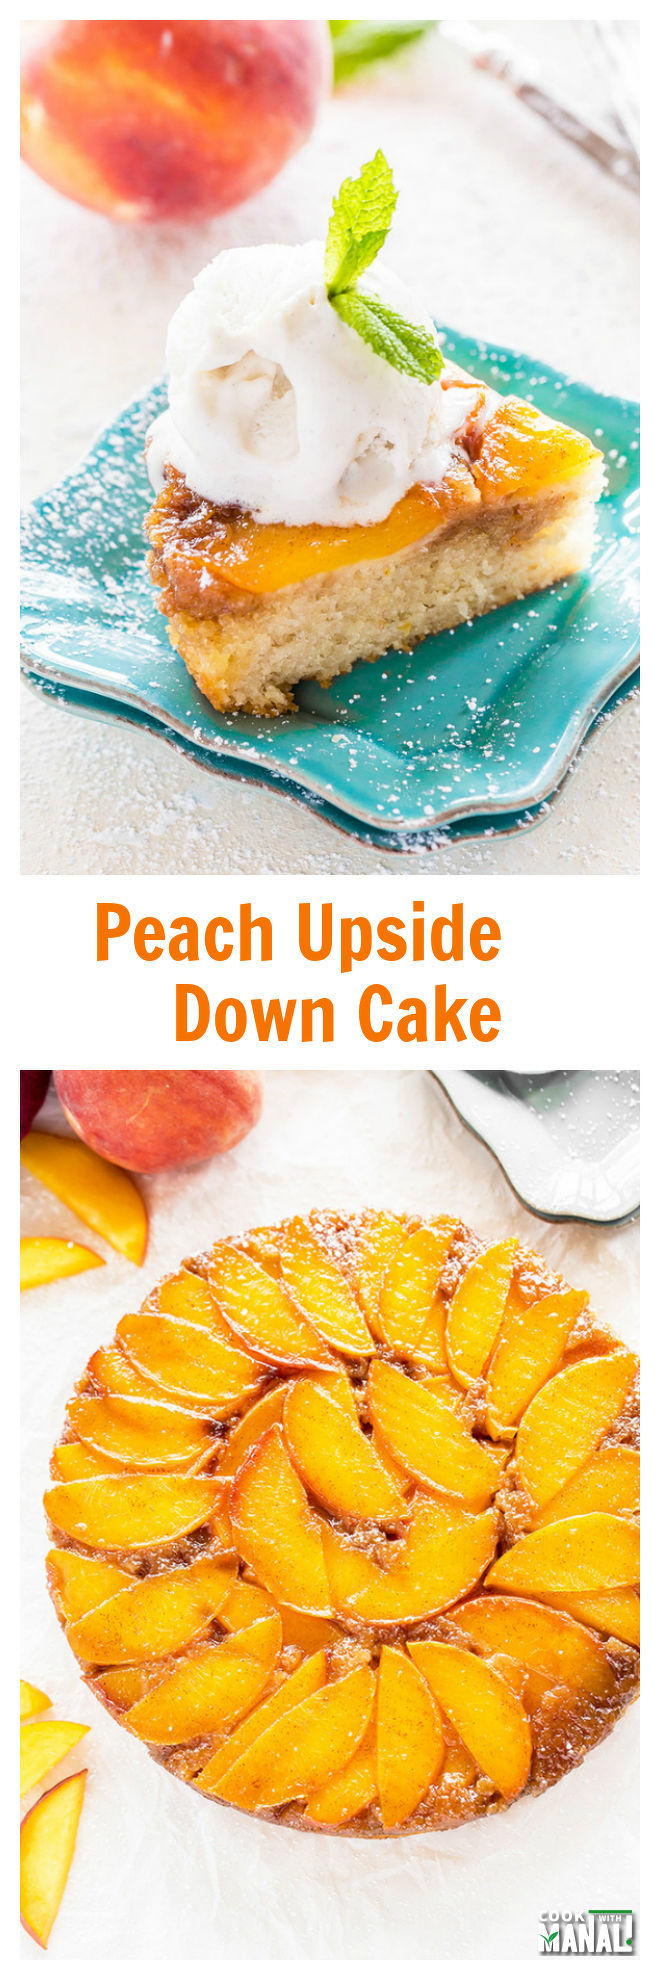 Peach-Upside-Down-Cake-Collage